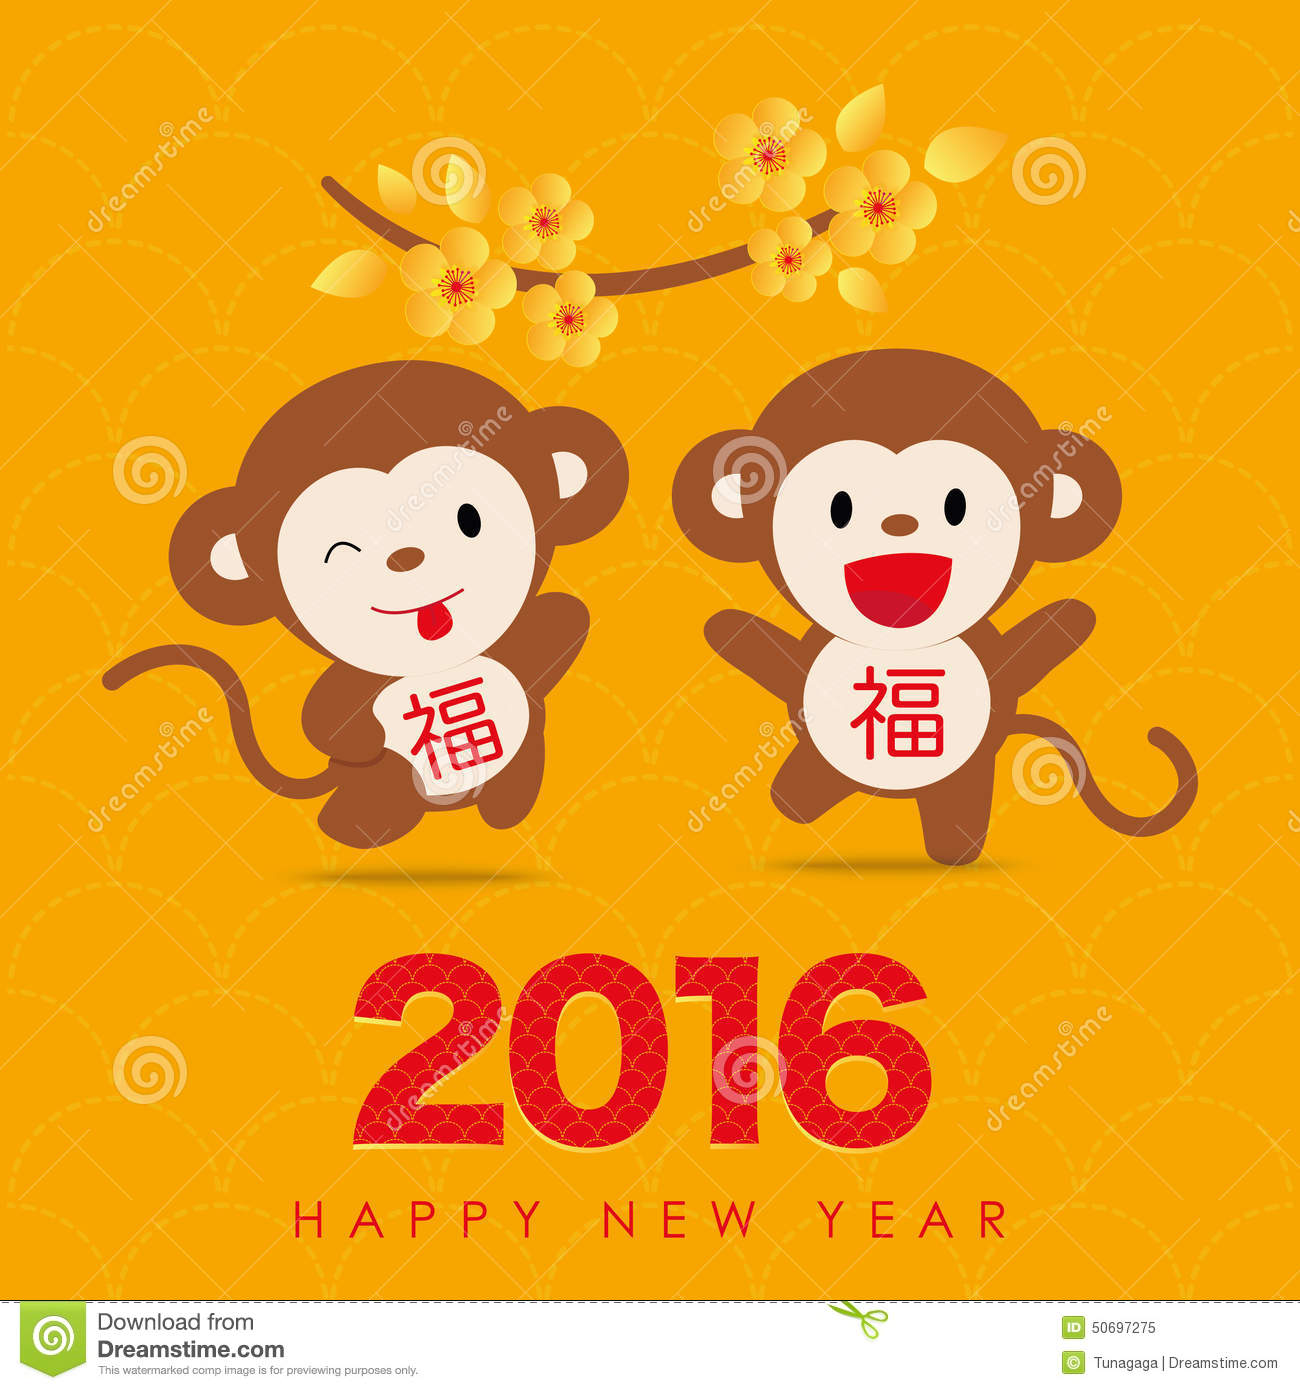 2016 happy chinese new year of monkey - When Is Chinese New Year 2016